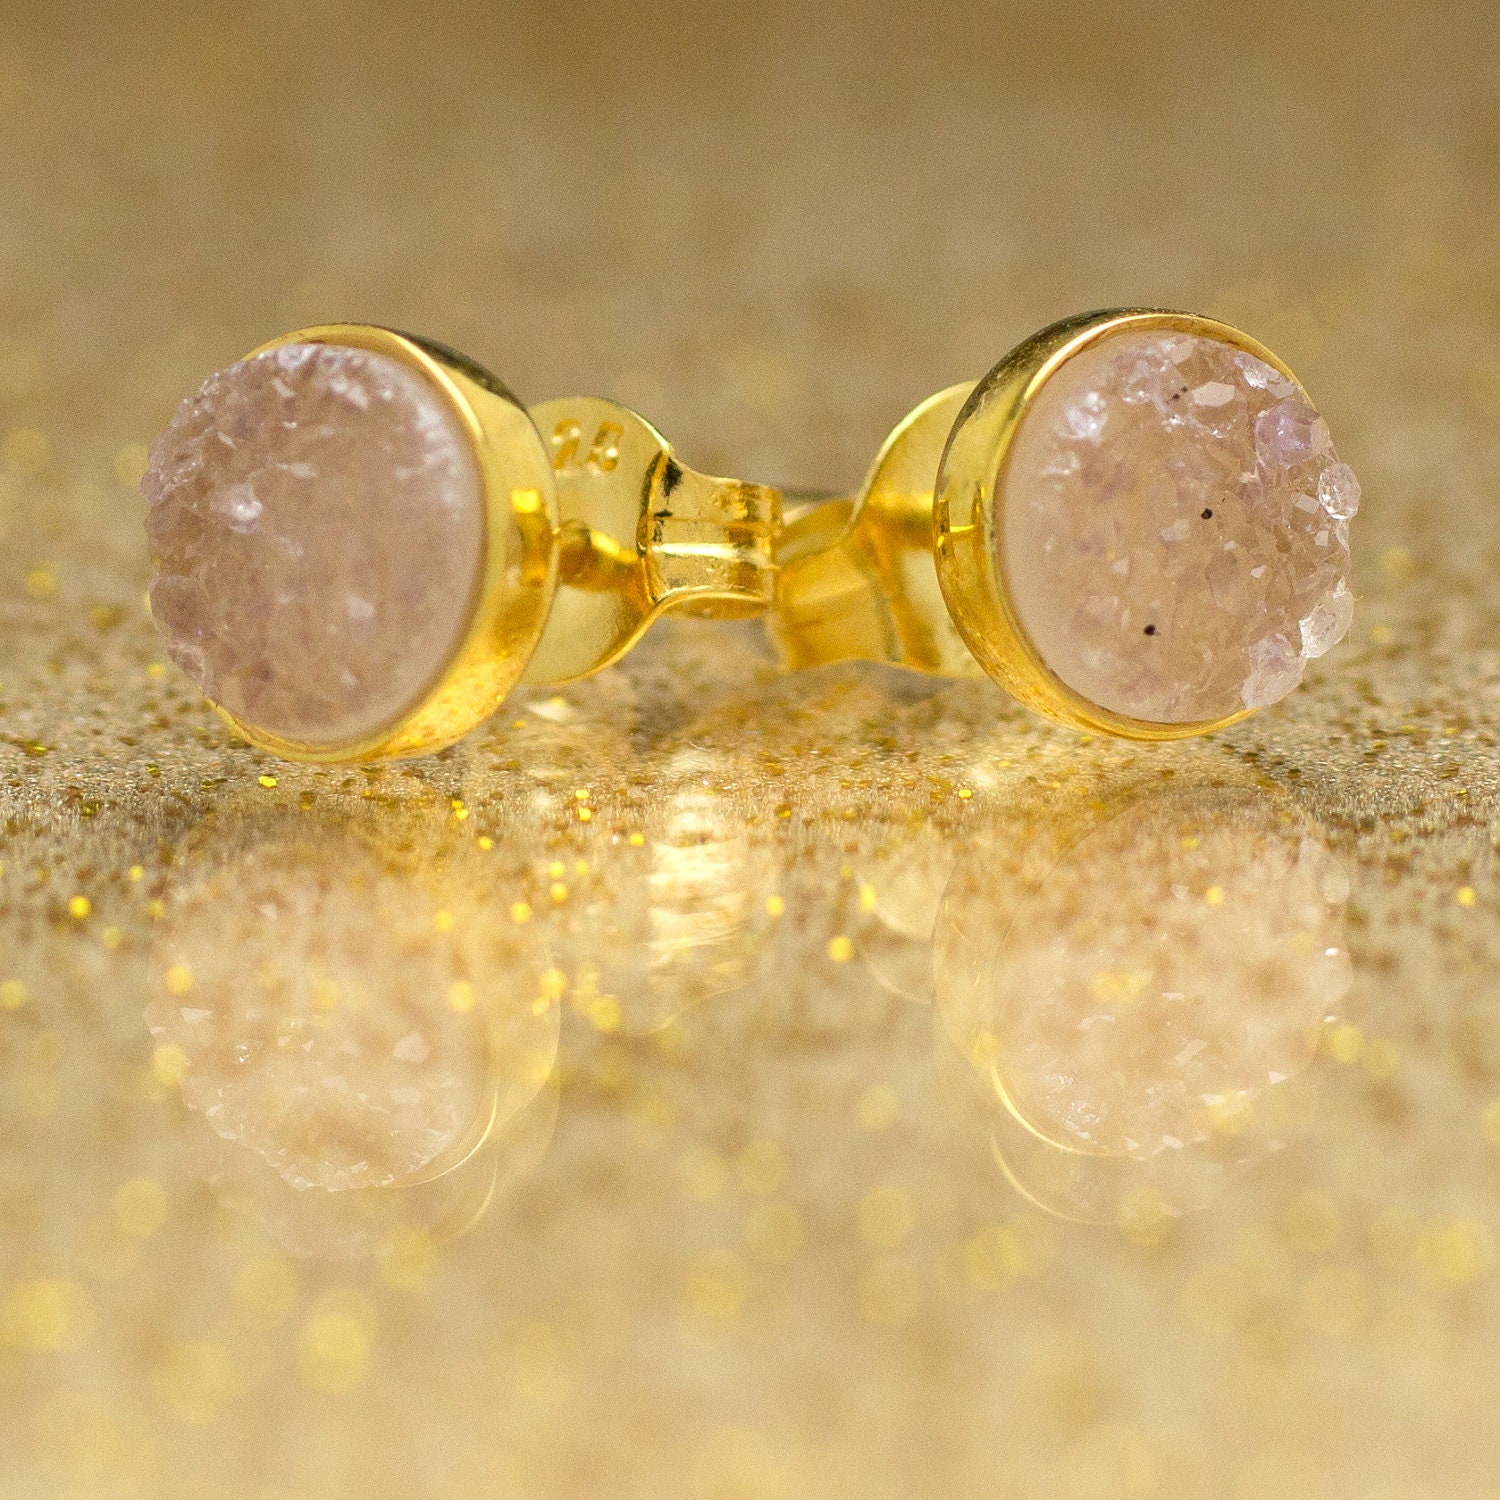 Drusy Quartz Stud Earrings - 24k Gold Vermeil - 6mm Round - Light Pink Drusy Quartz